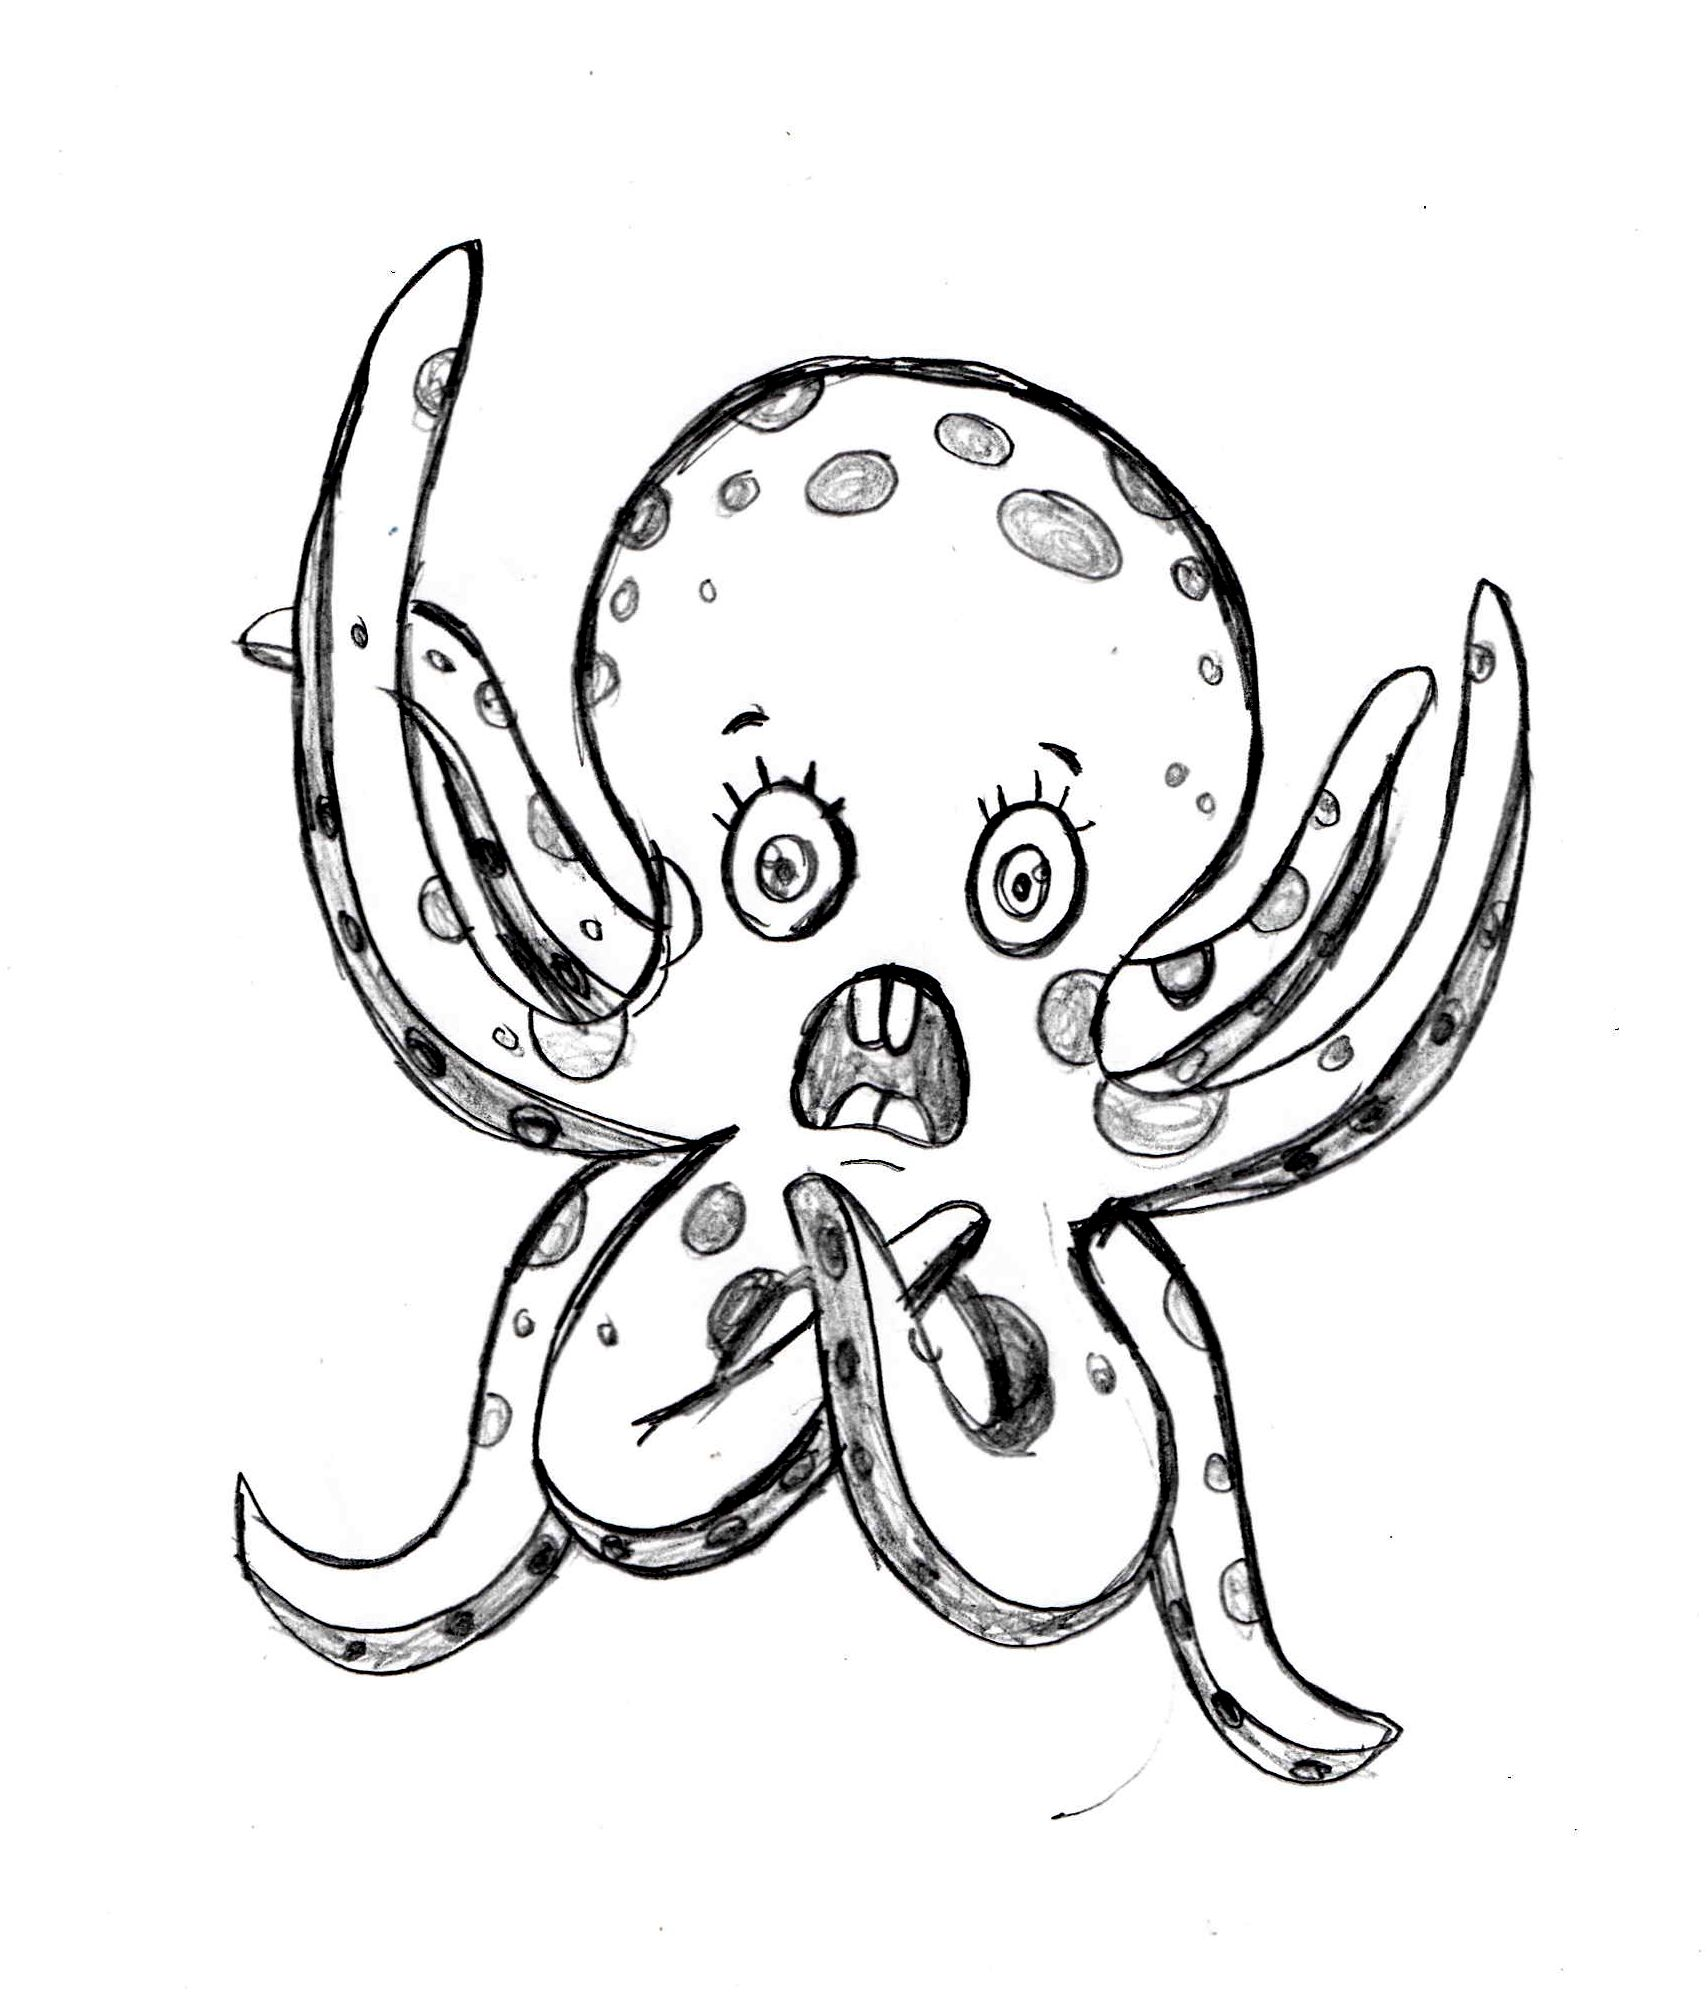 Octopus sketch, drawing tutorial